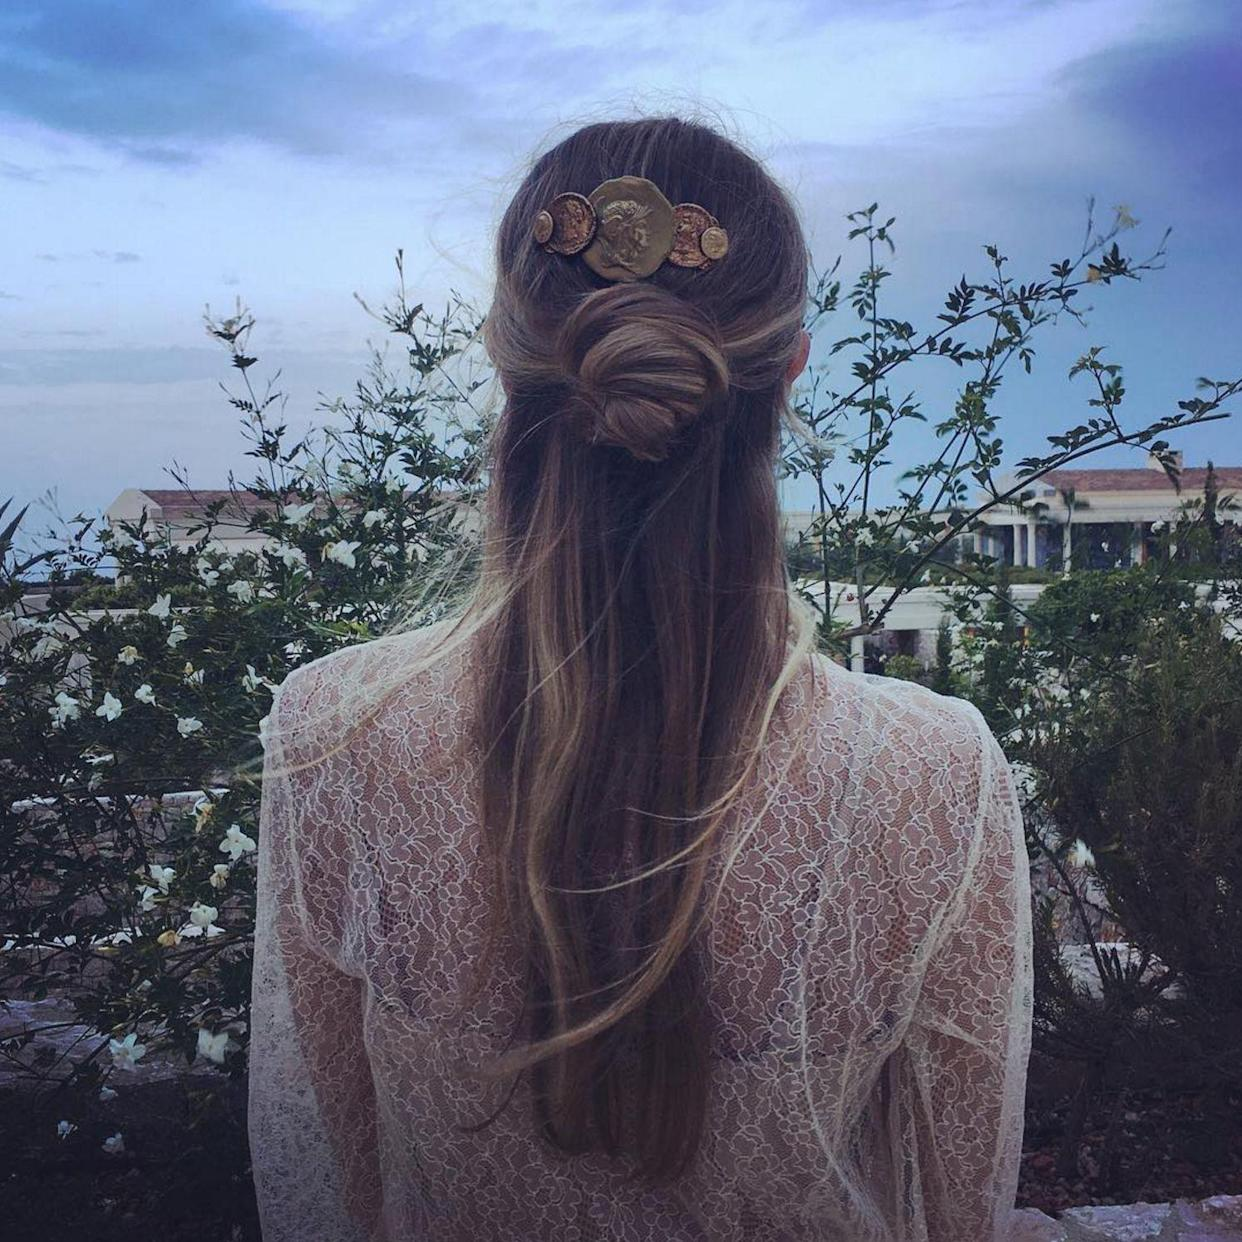 """<p><strong>The Cinnamon Swirl</strong></p> <p>If you're into hair twists and <span>chignons, then you'll be into <a href=""""https://www.instagram.com/harleyvnewton/?hl=en"""" rel=""""nofollow noopener"""" target=""""_blank"""" data-ylk=""""slk:Harley Viera-Newton"""" class=""""link rapid-noclick-resp"""">Harley Viera-Newton</a> 's hairstyle in a big way. This year saw the introduction of """"the hun"""" – that's a half up/half down 'do, incorporating a bun – but Harley takes the hun to new heights here. Watch and learn.</span></p> <span class=""""copyright"""">Photo: via @harleyvnewton.</span>"""